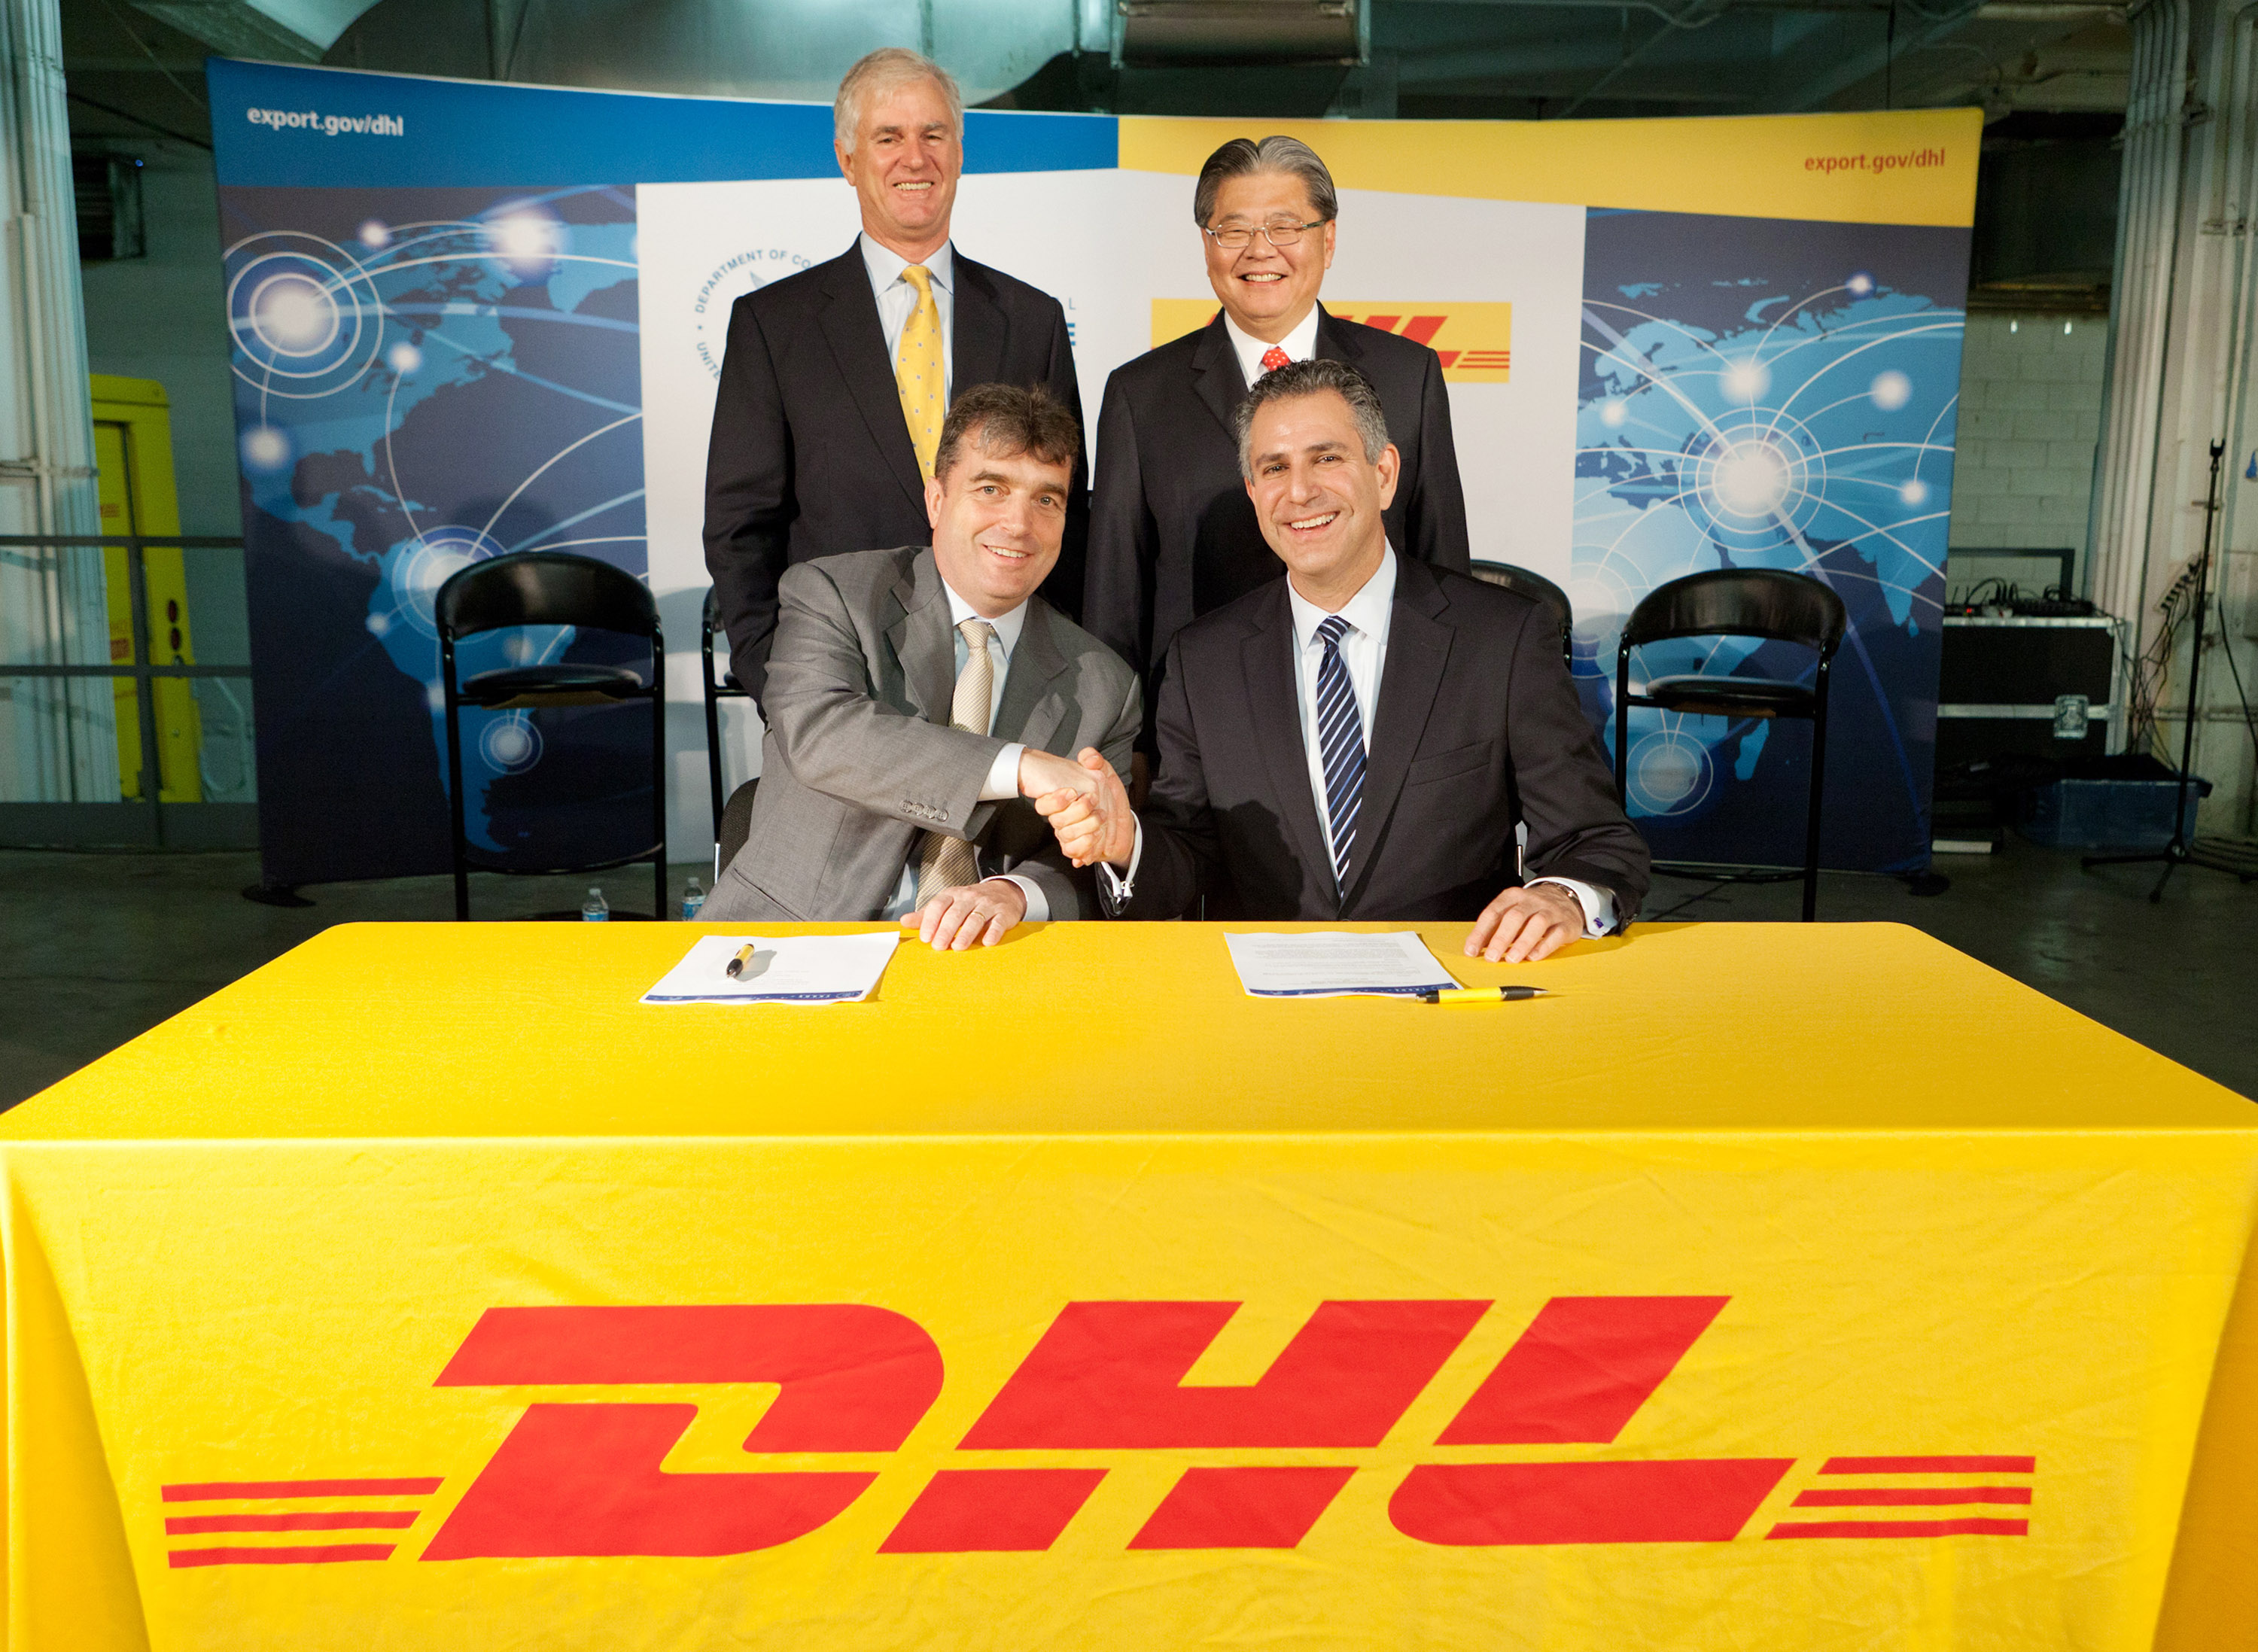 New Partnership with DHL Express will Help Small and Mid